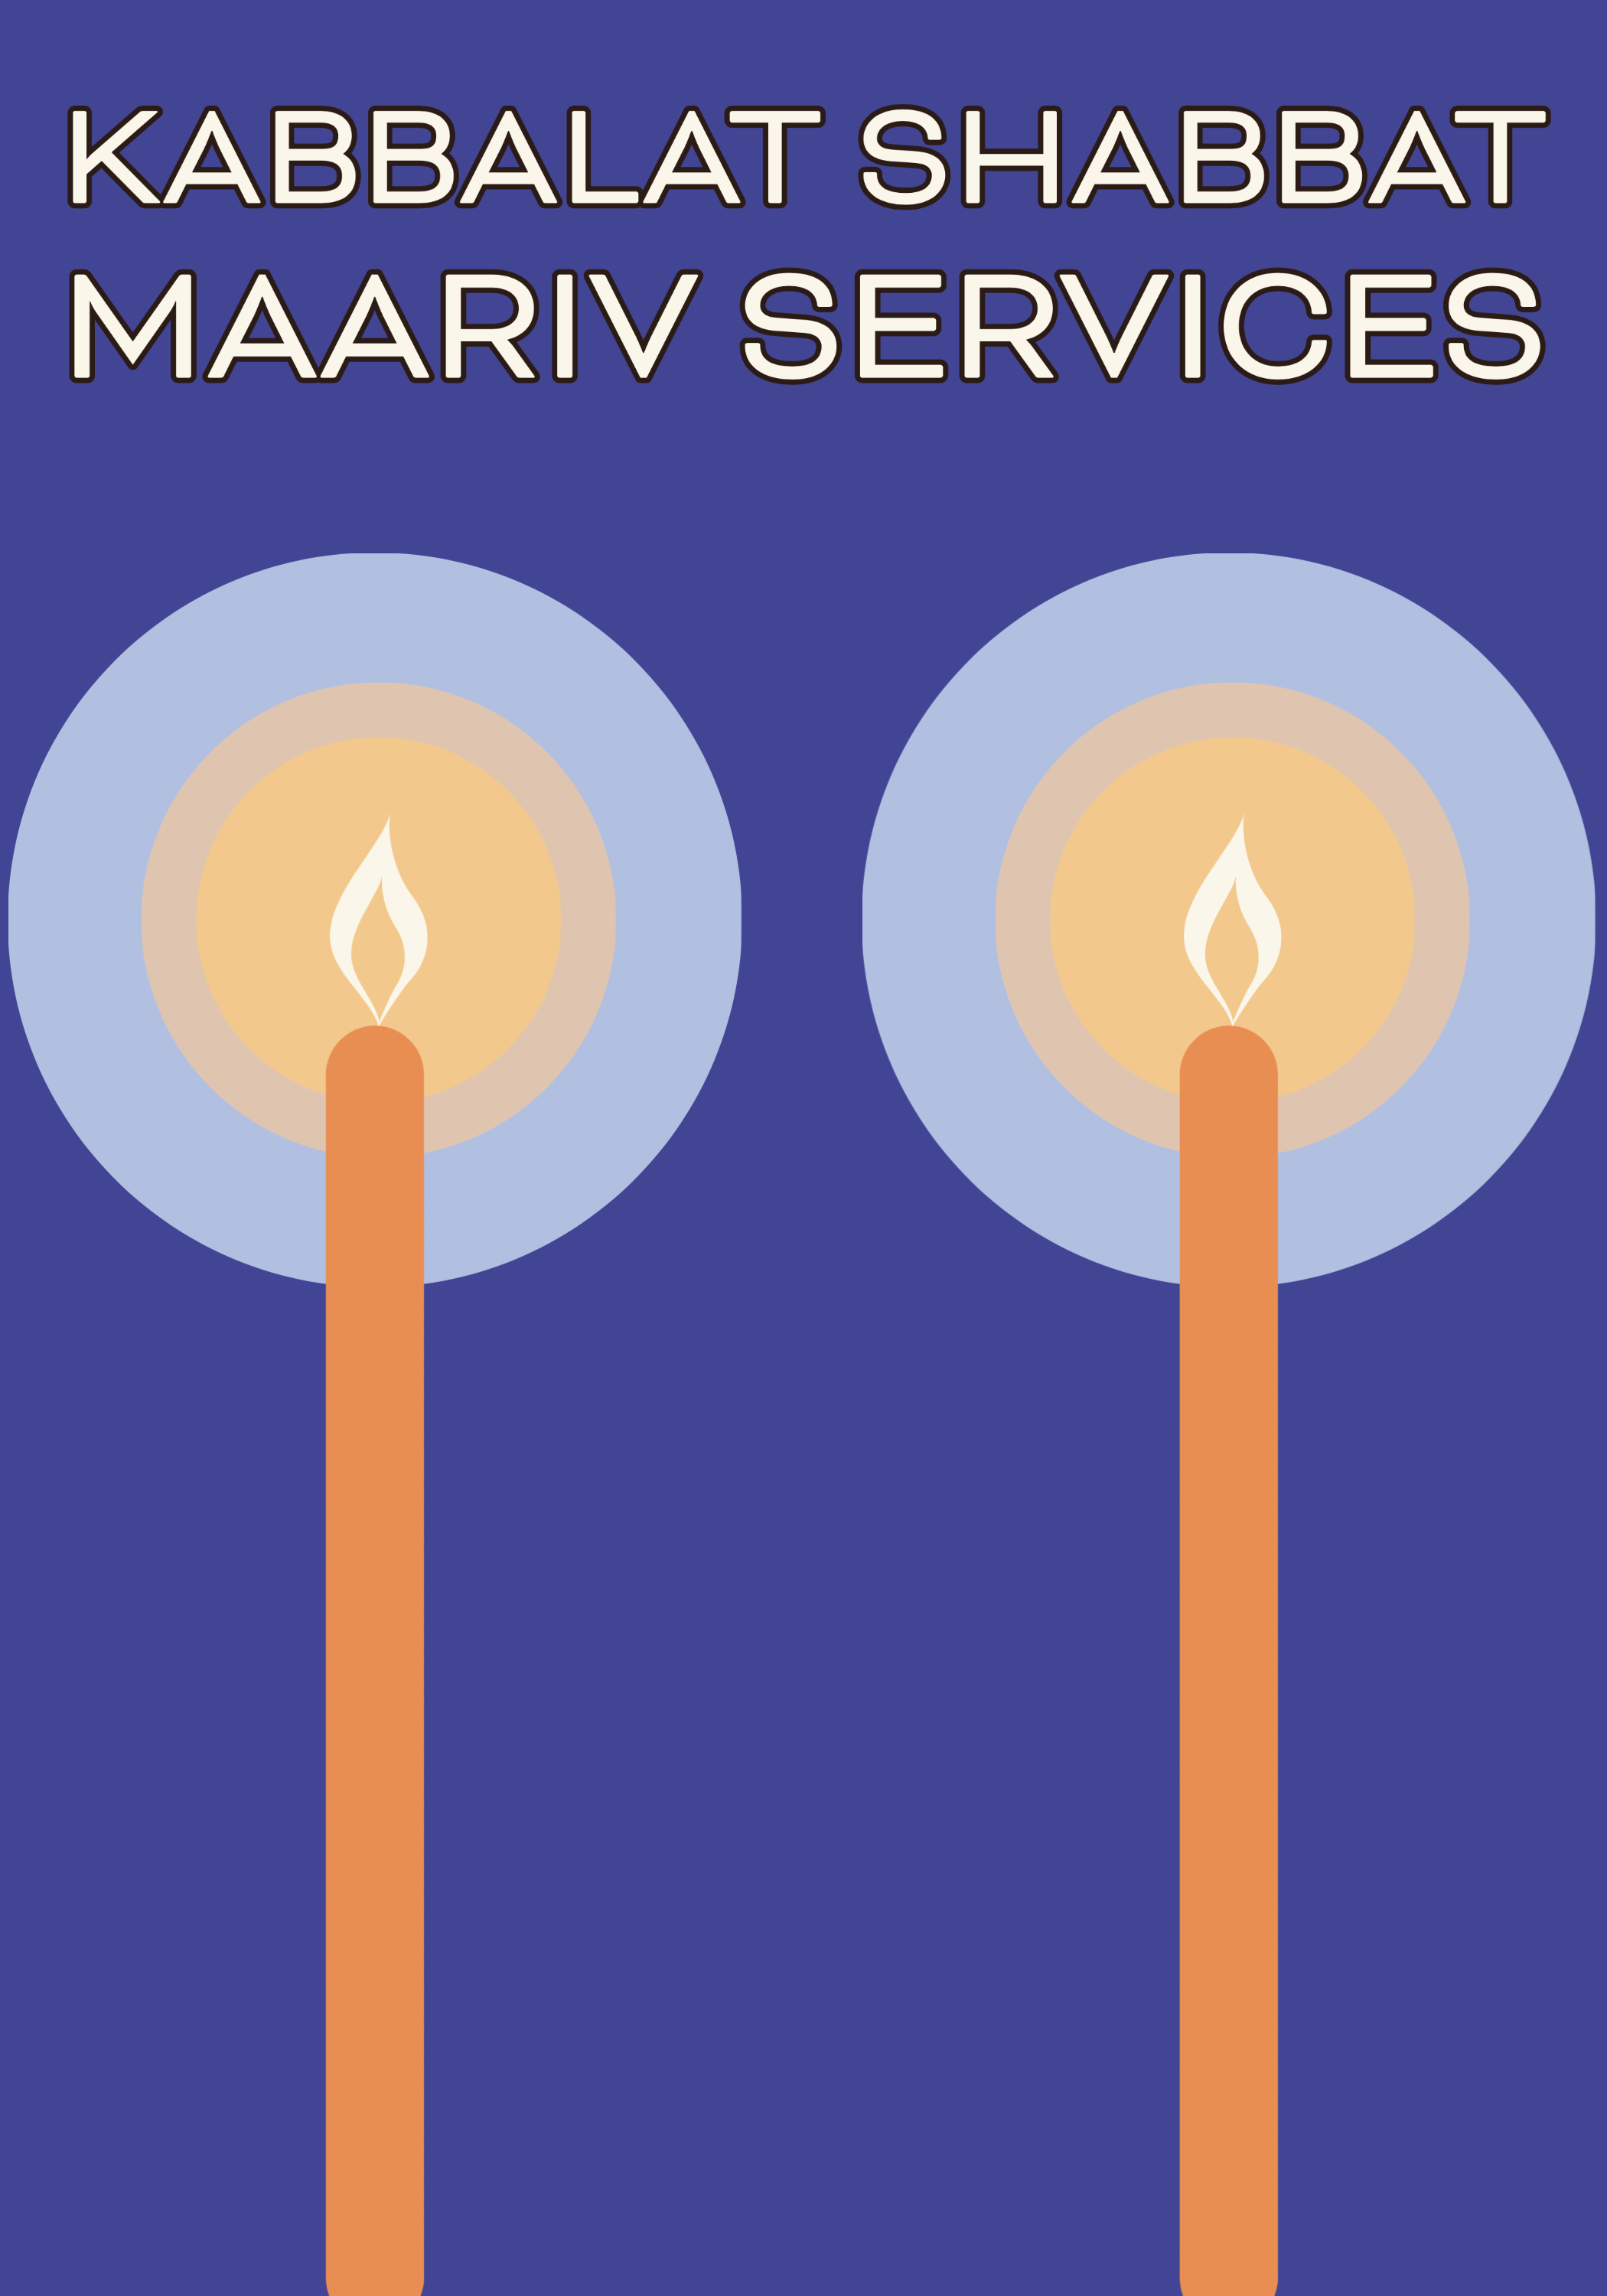 Kabbalat Shabbat Maariv Services 1st and 3rd Fridays 7:30 pm